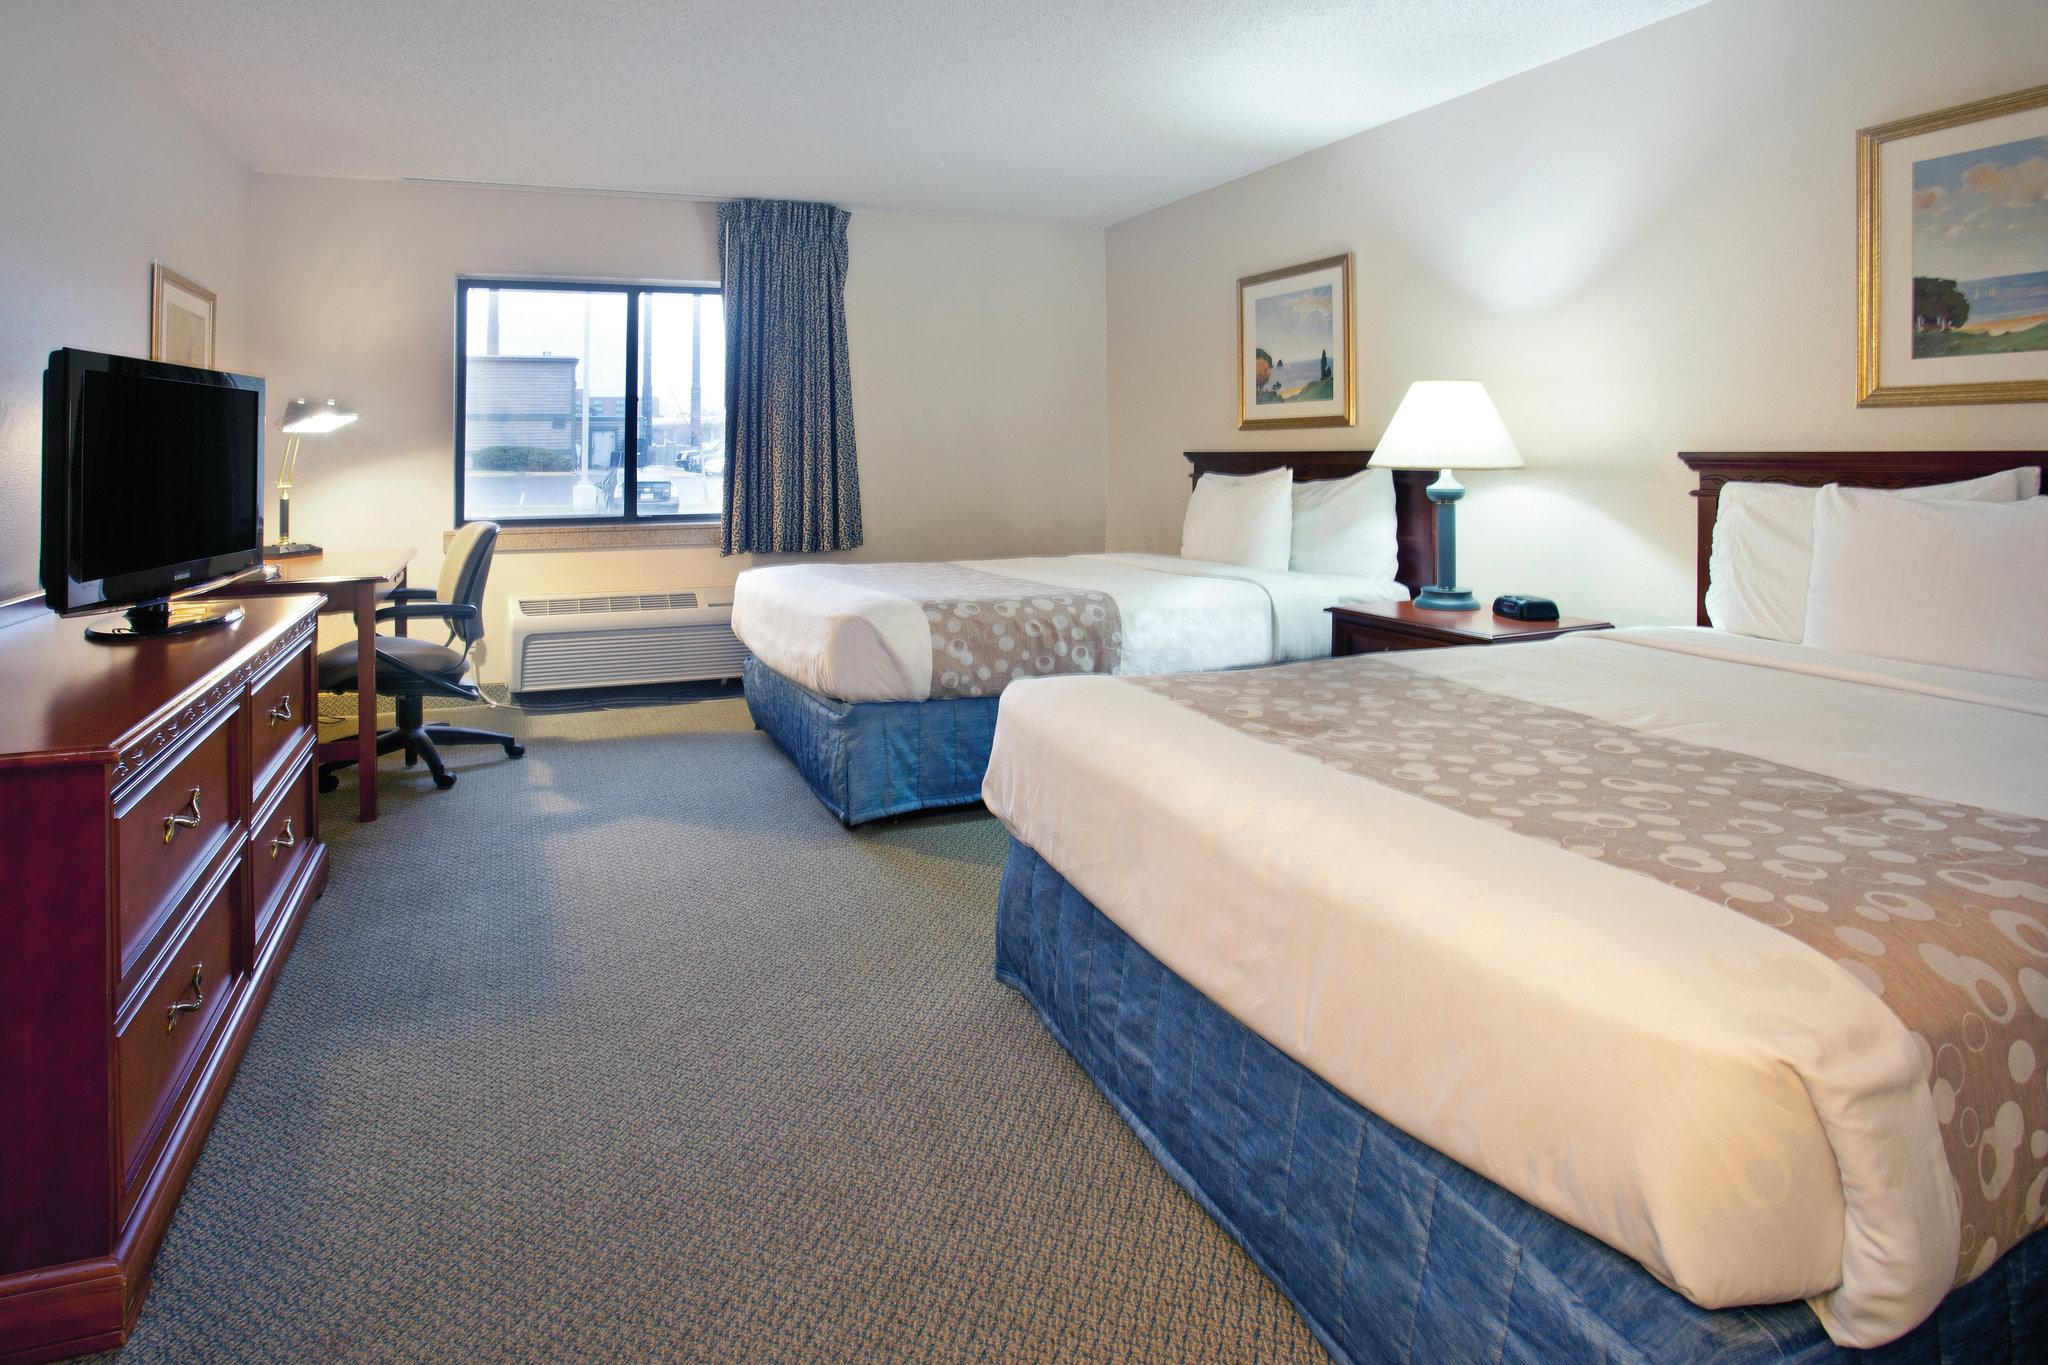 La Quinta Inn & Suites Cincinnati Northeast